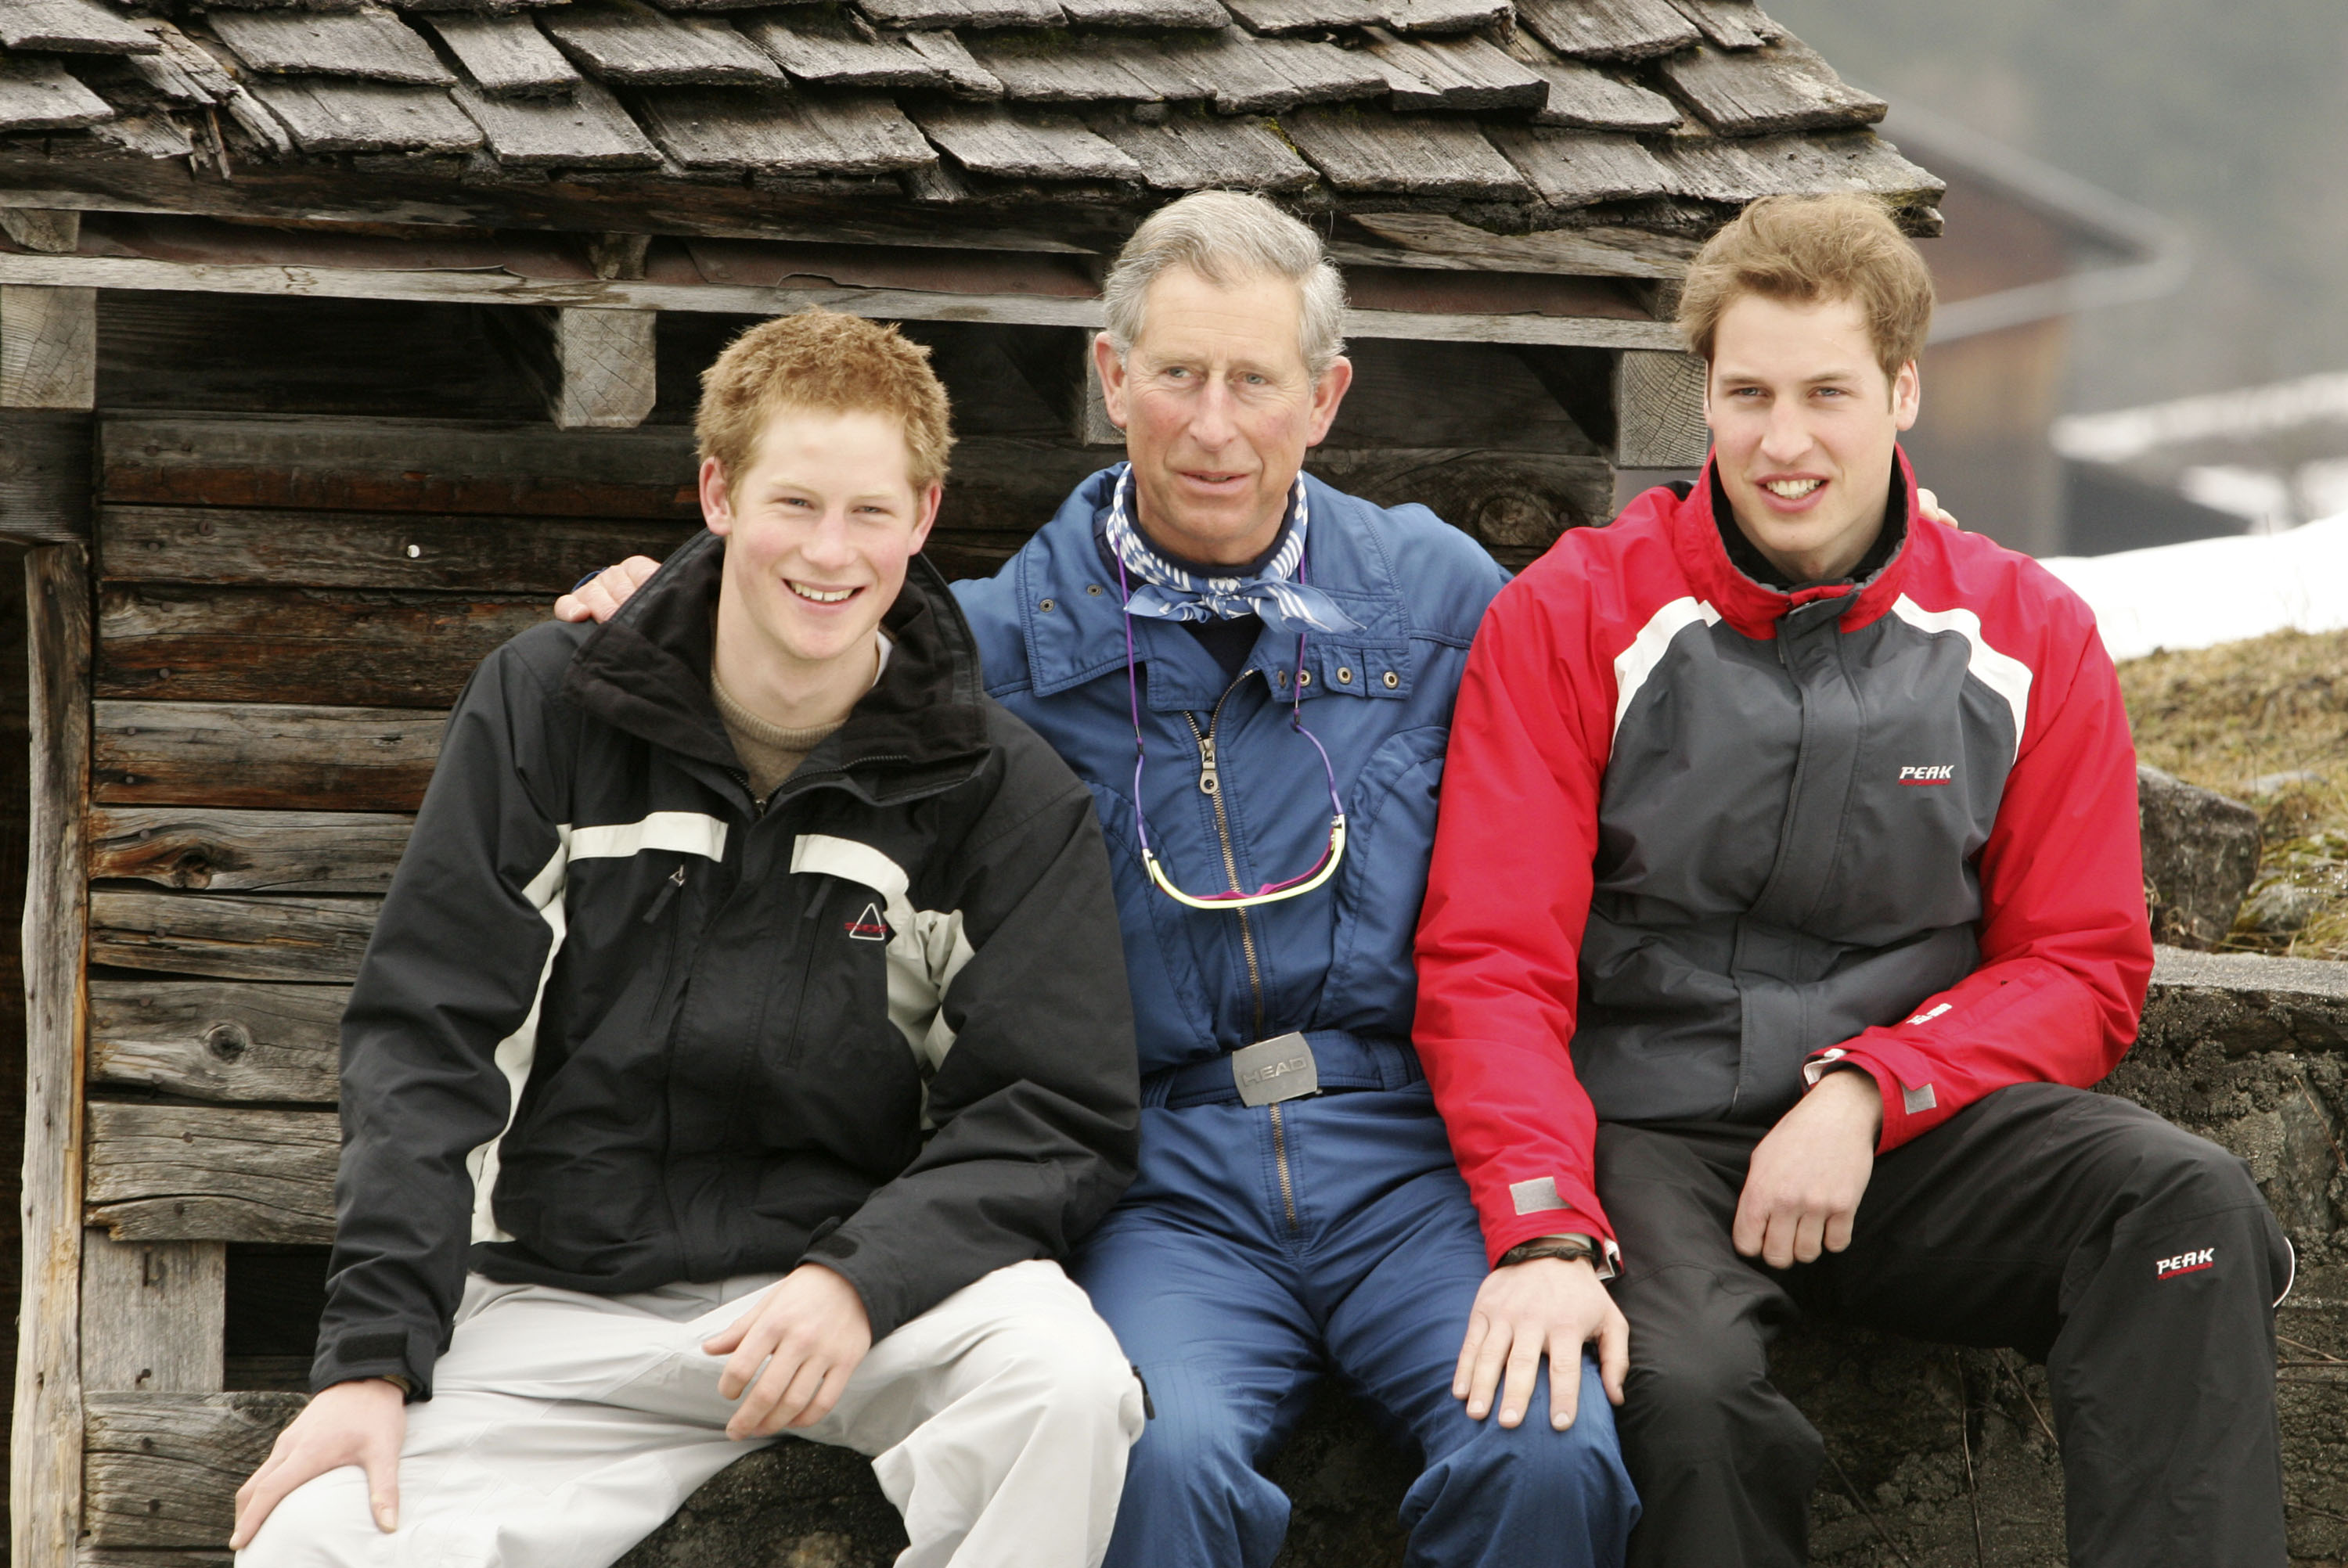 HRH Prince Of Wales & Family Enjoy Skiing Holiday In Klosters.